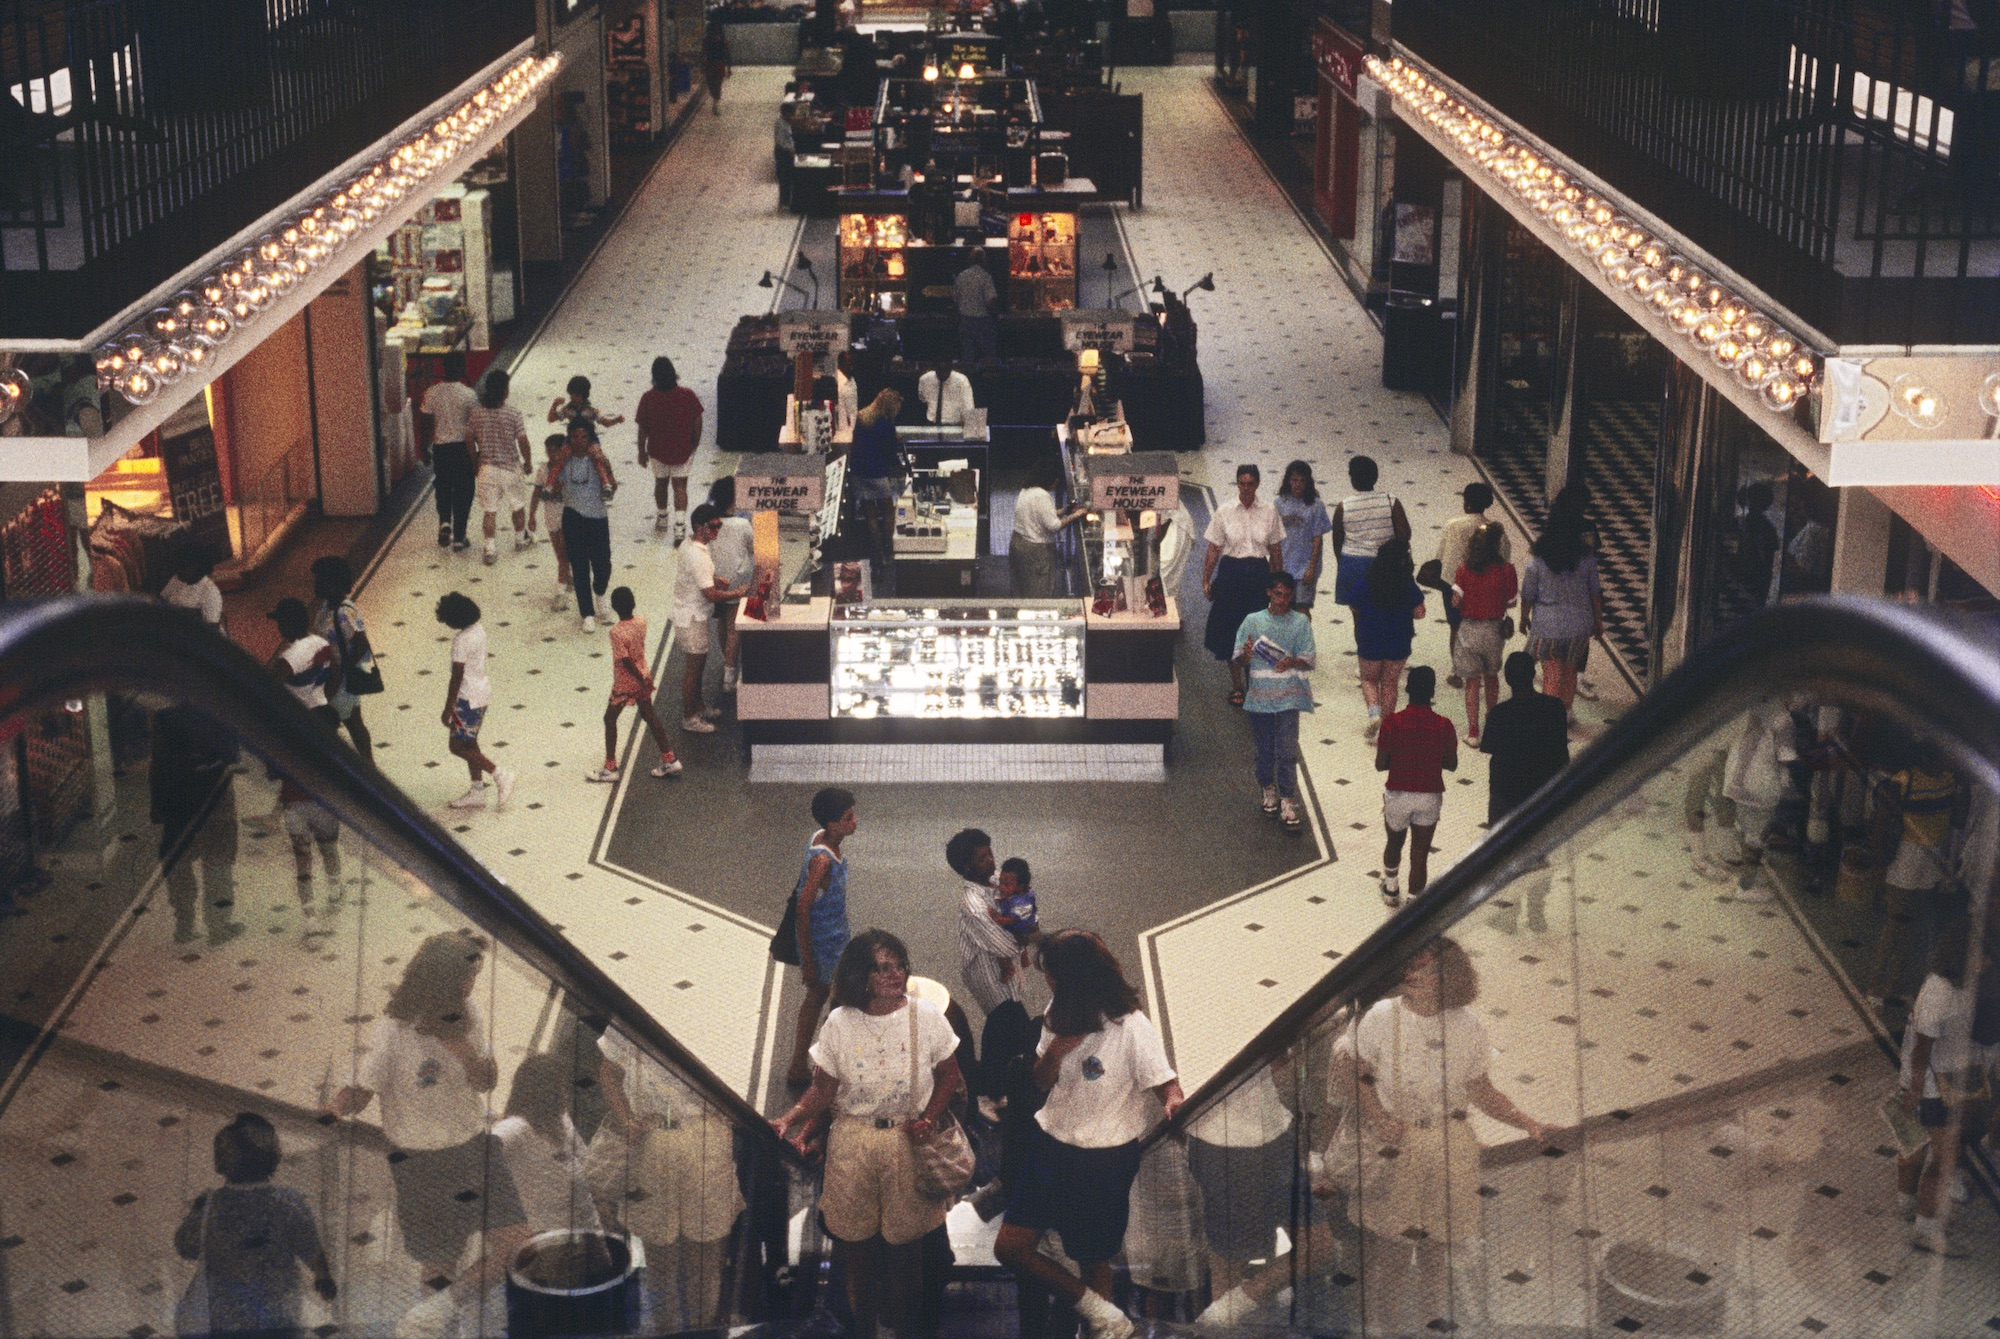 Photo from 1989 of the interior of a shopping mall looking down escalators.